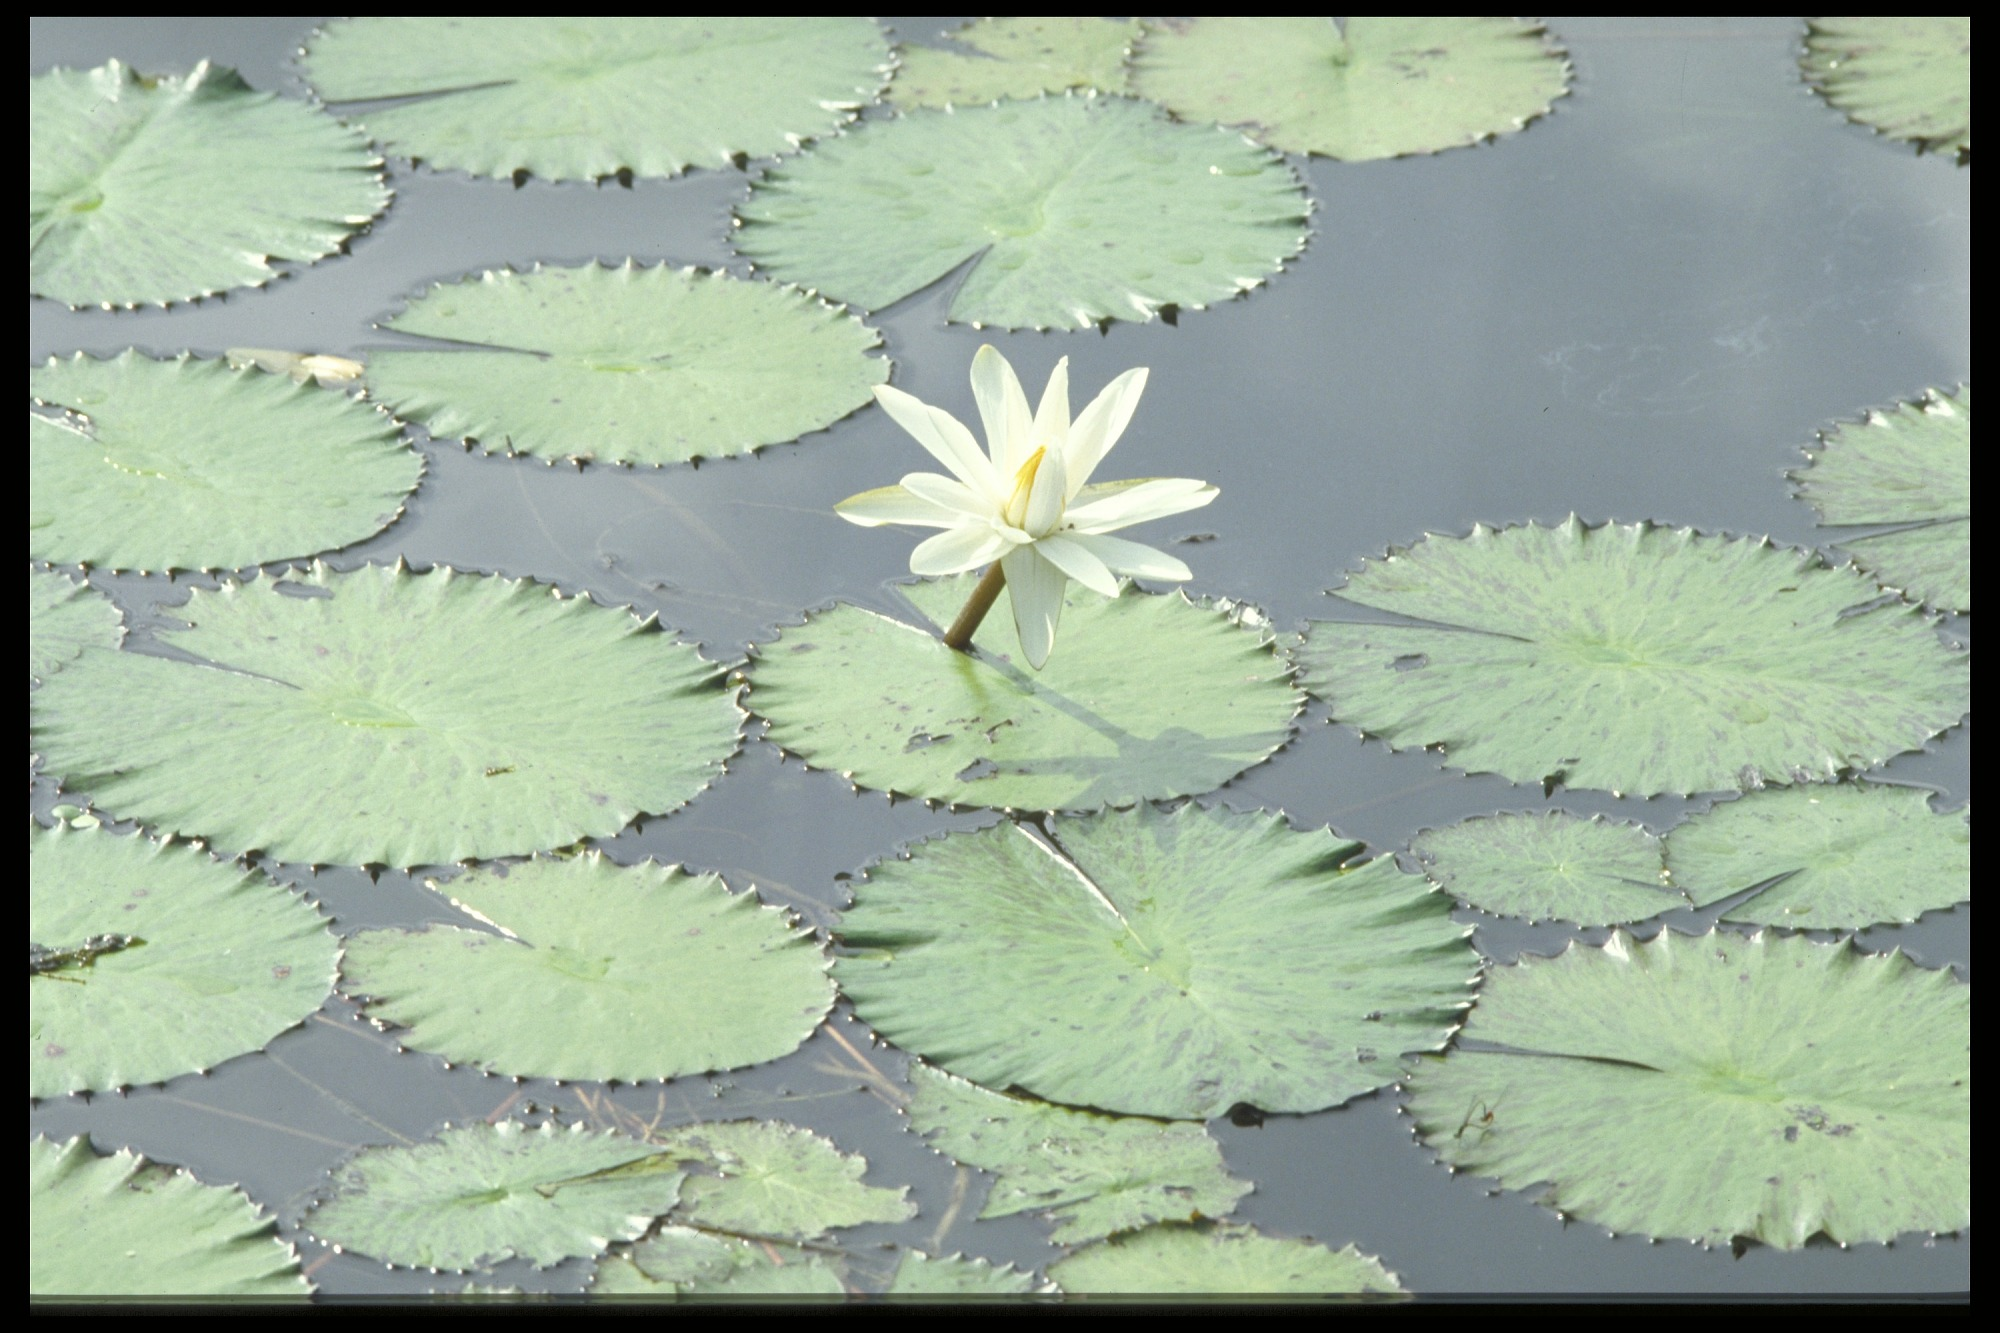 Water flower, Panama, STRI, 1990, Smithsonian Institution Archives, SIA Acc. 11-009 [92-1939].